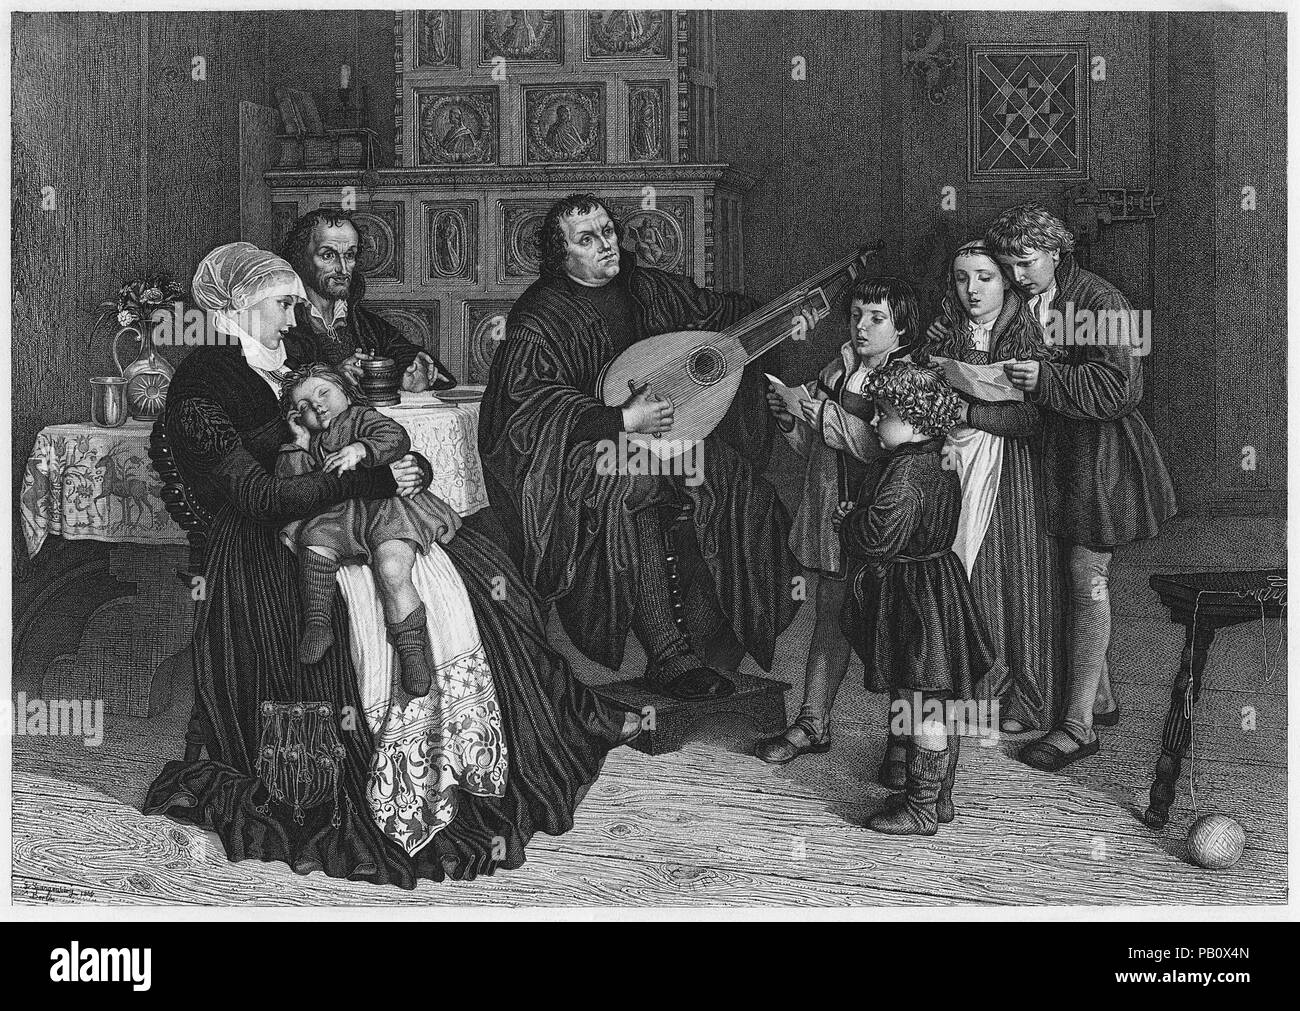 Luther and his Family, Engraving by L. Schulz, 1900, after original Painting by Gustav Adolph Spangenberg - Stock Image